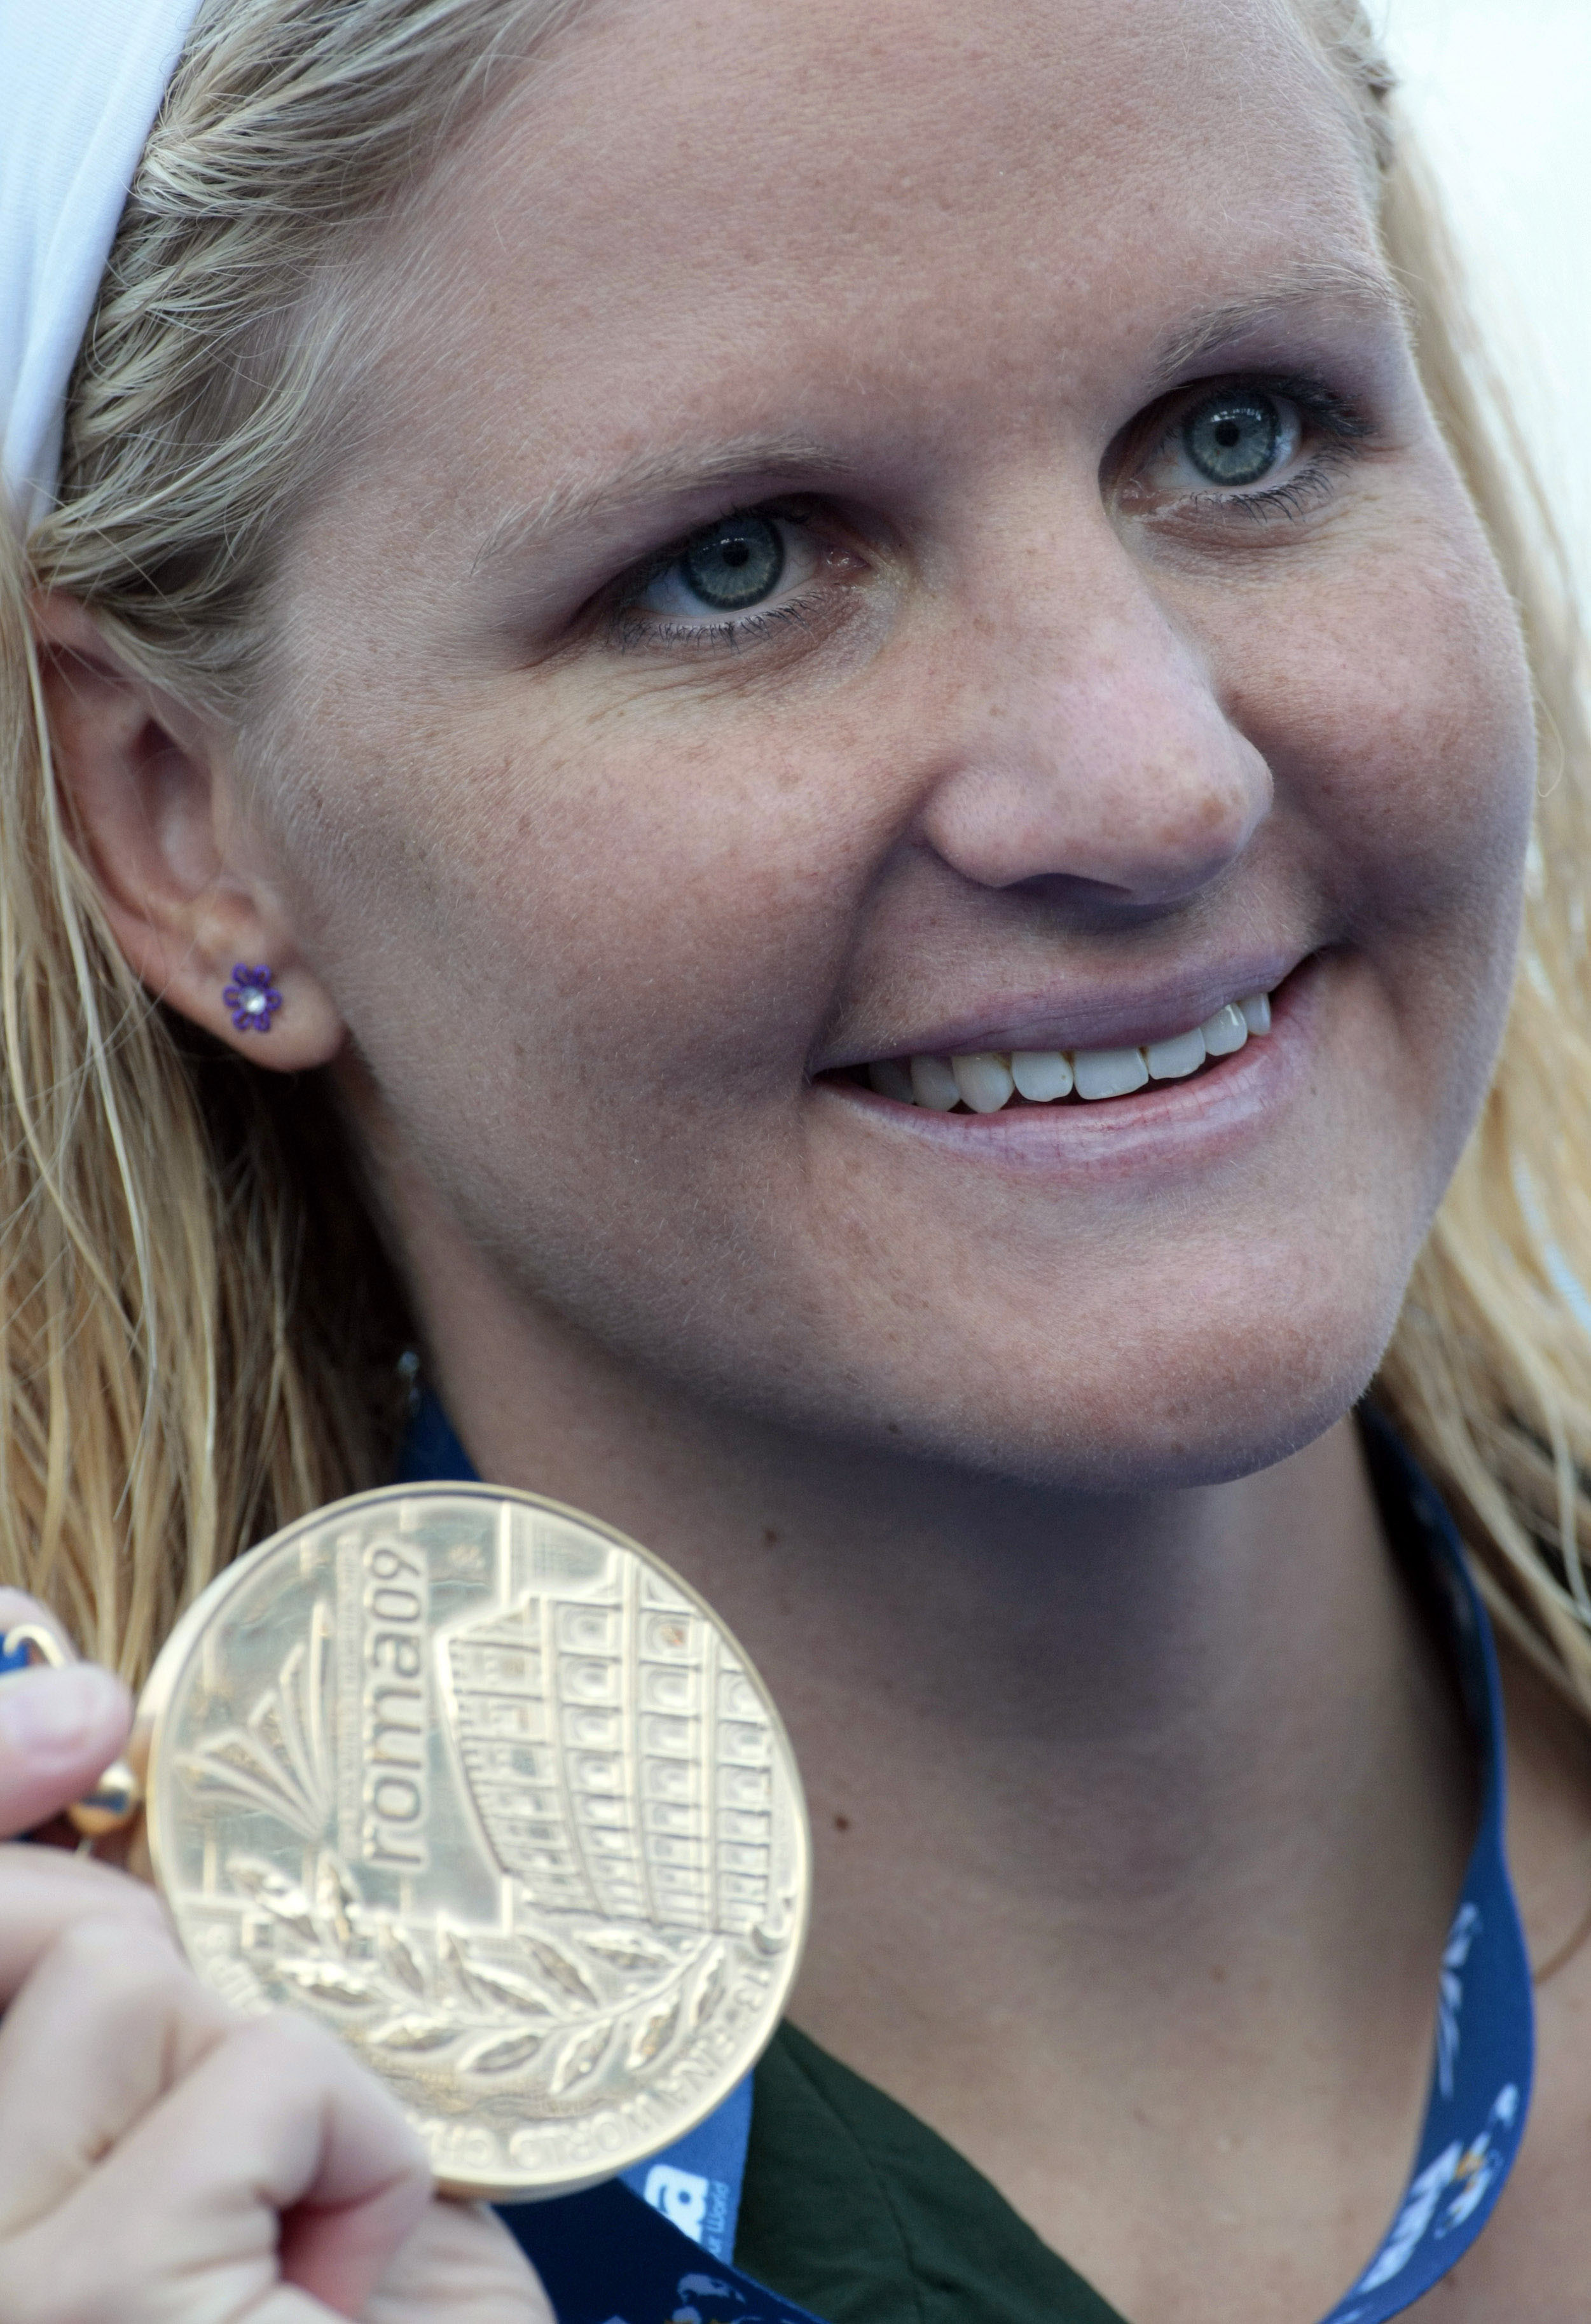 File- In this Aug. 1, 2009, file photo Zimbabwe's Kirsty Coventry holds the gold medal she won in the final of the women's 200-meter backstroke, at the FINA Swimming World Championships in Rome. Like Michael Phelps, Coventry is going to the Olympics for t